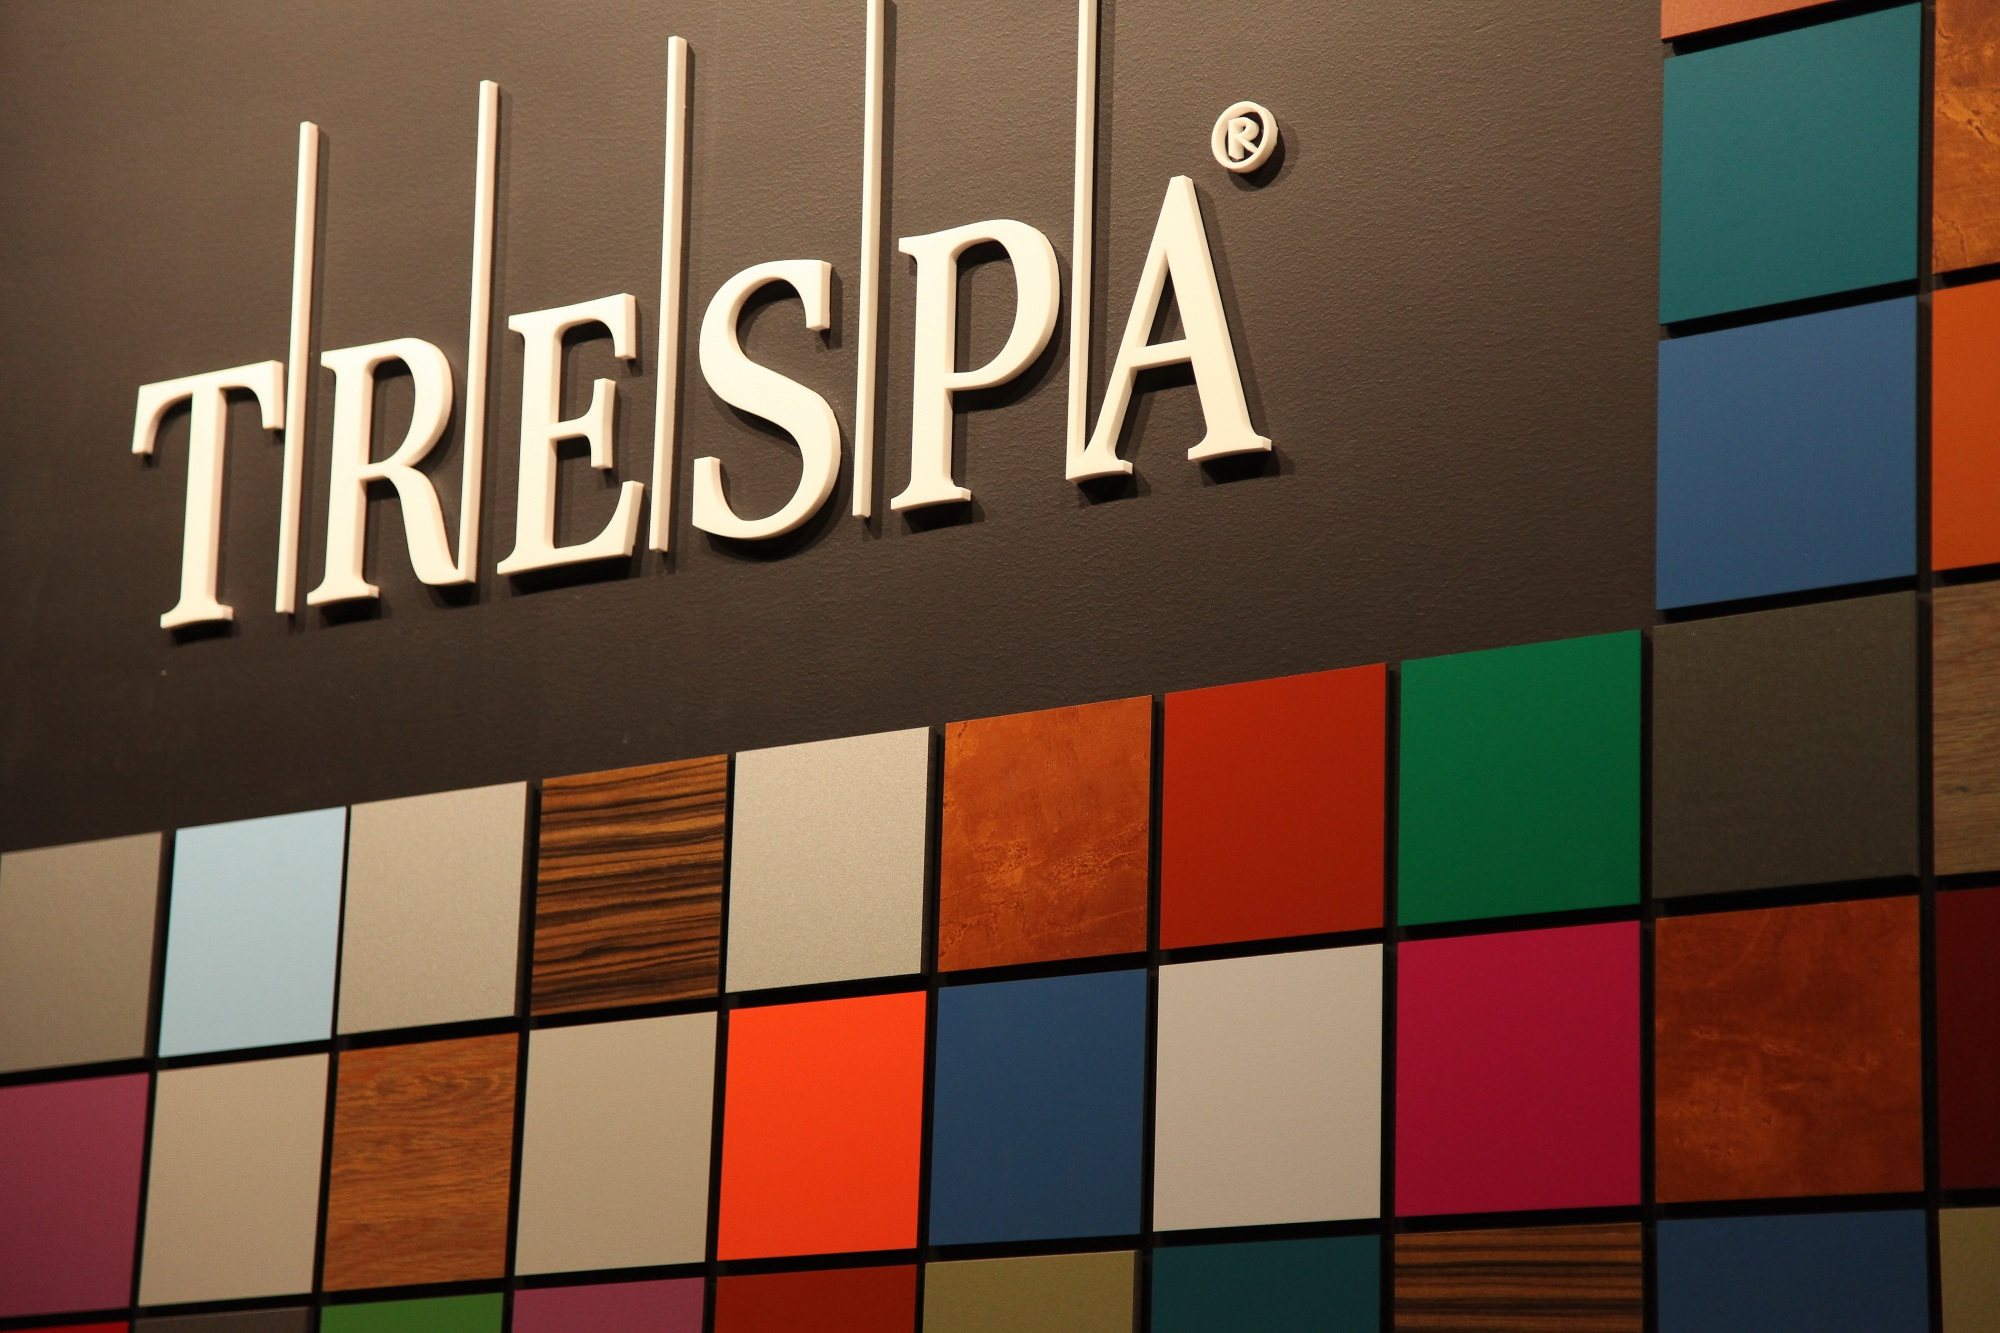 trespa north america announces new initiatives and expansion. Black Bedroom Furniture Sets. Home Design Ideas